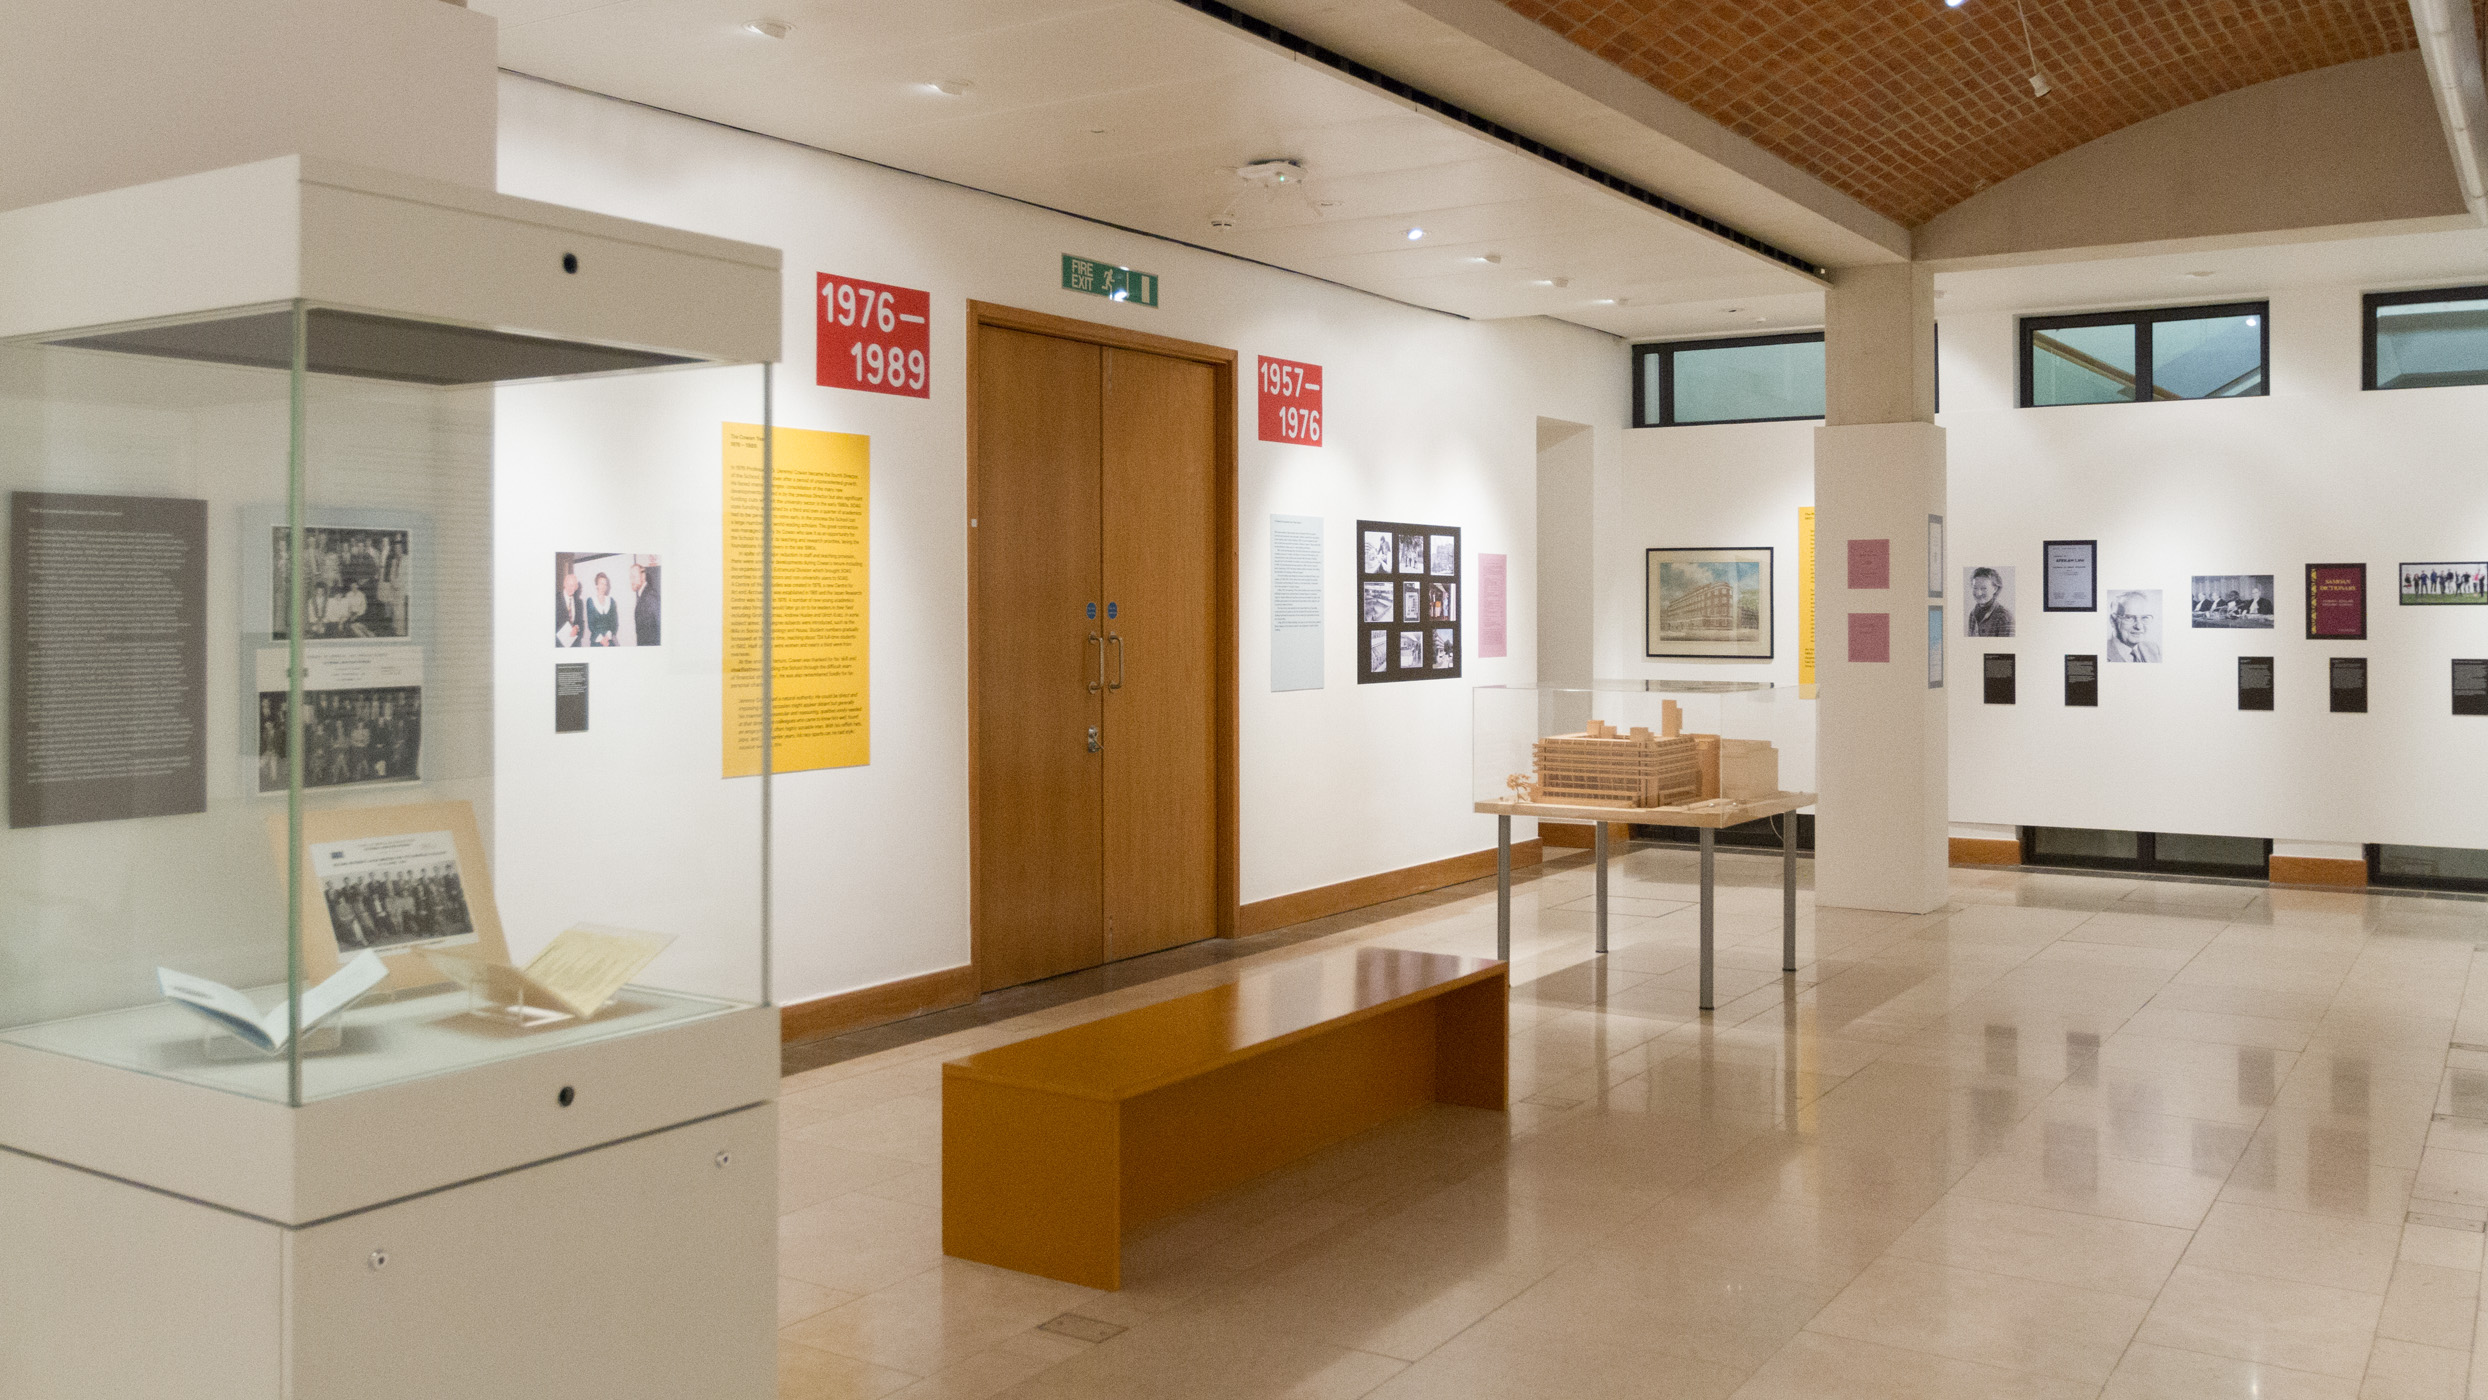 The Brunei Gallery Exhibition Space